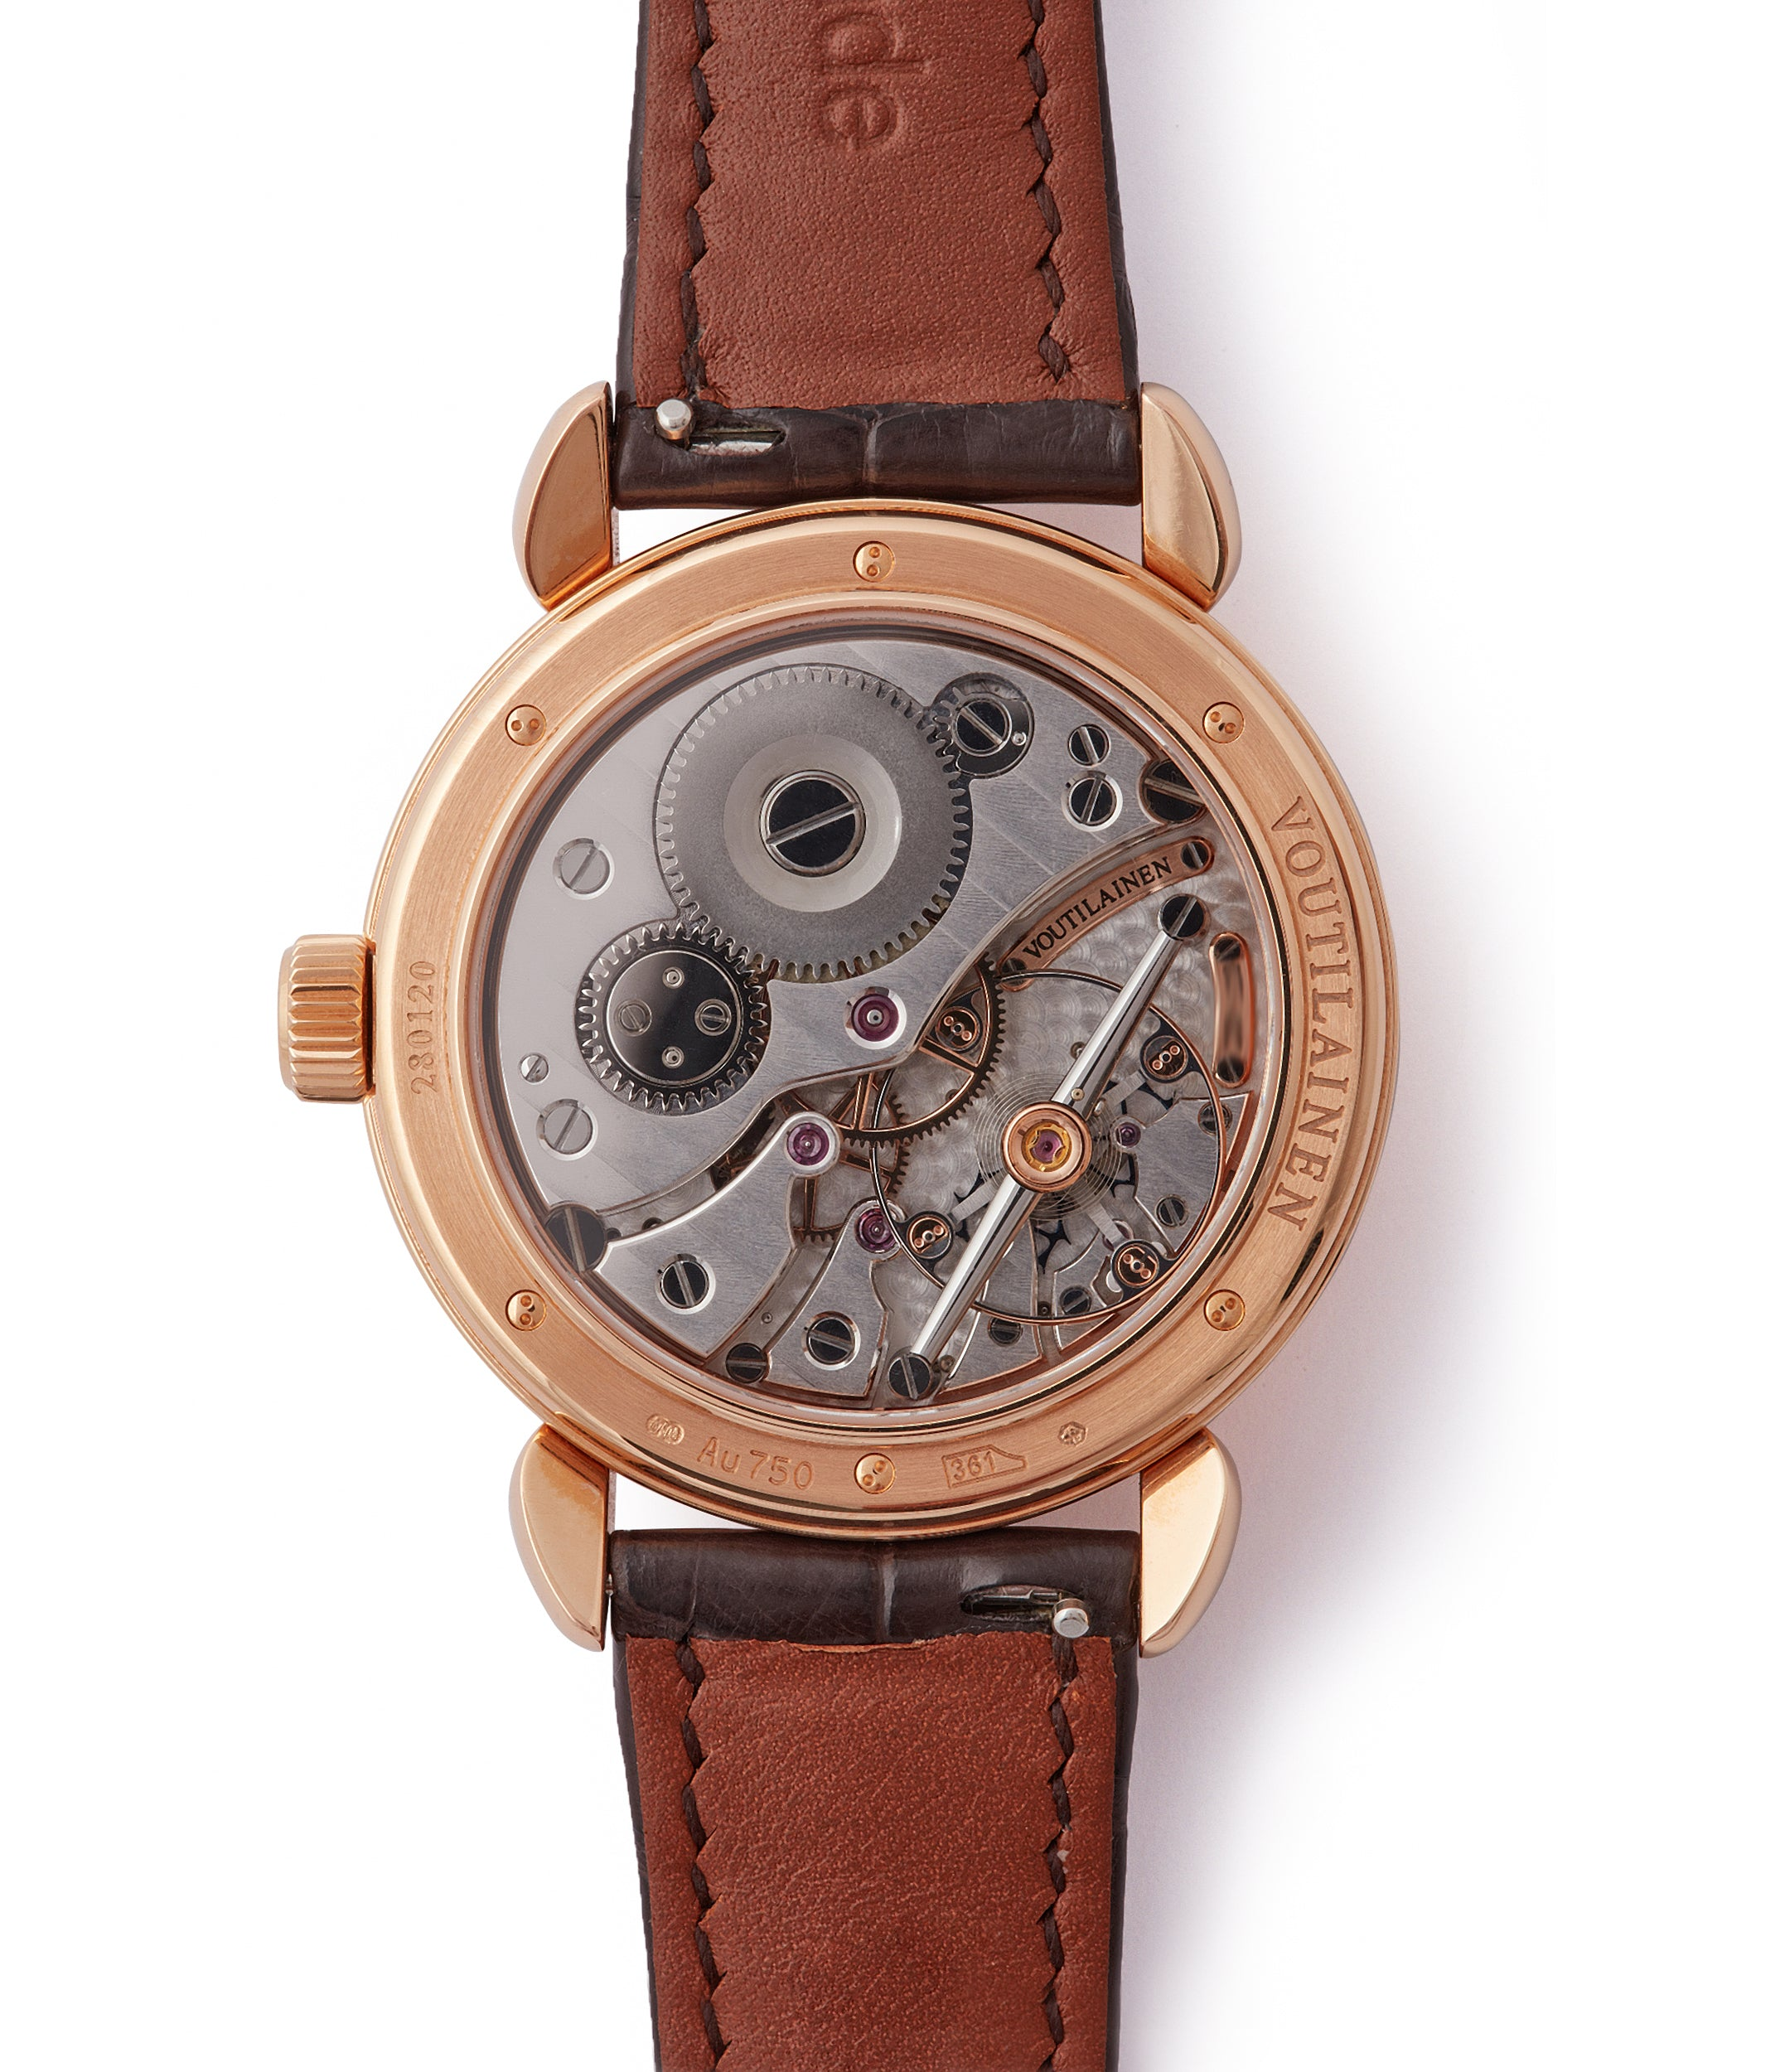 Kari Voutilainen watchmaking by hand Cal. 28 Vingt-8 rose gold dress watch with brown guilloche dial for sale at A Collected Man London approved re-seller of preowned Voutilainen watches